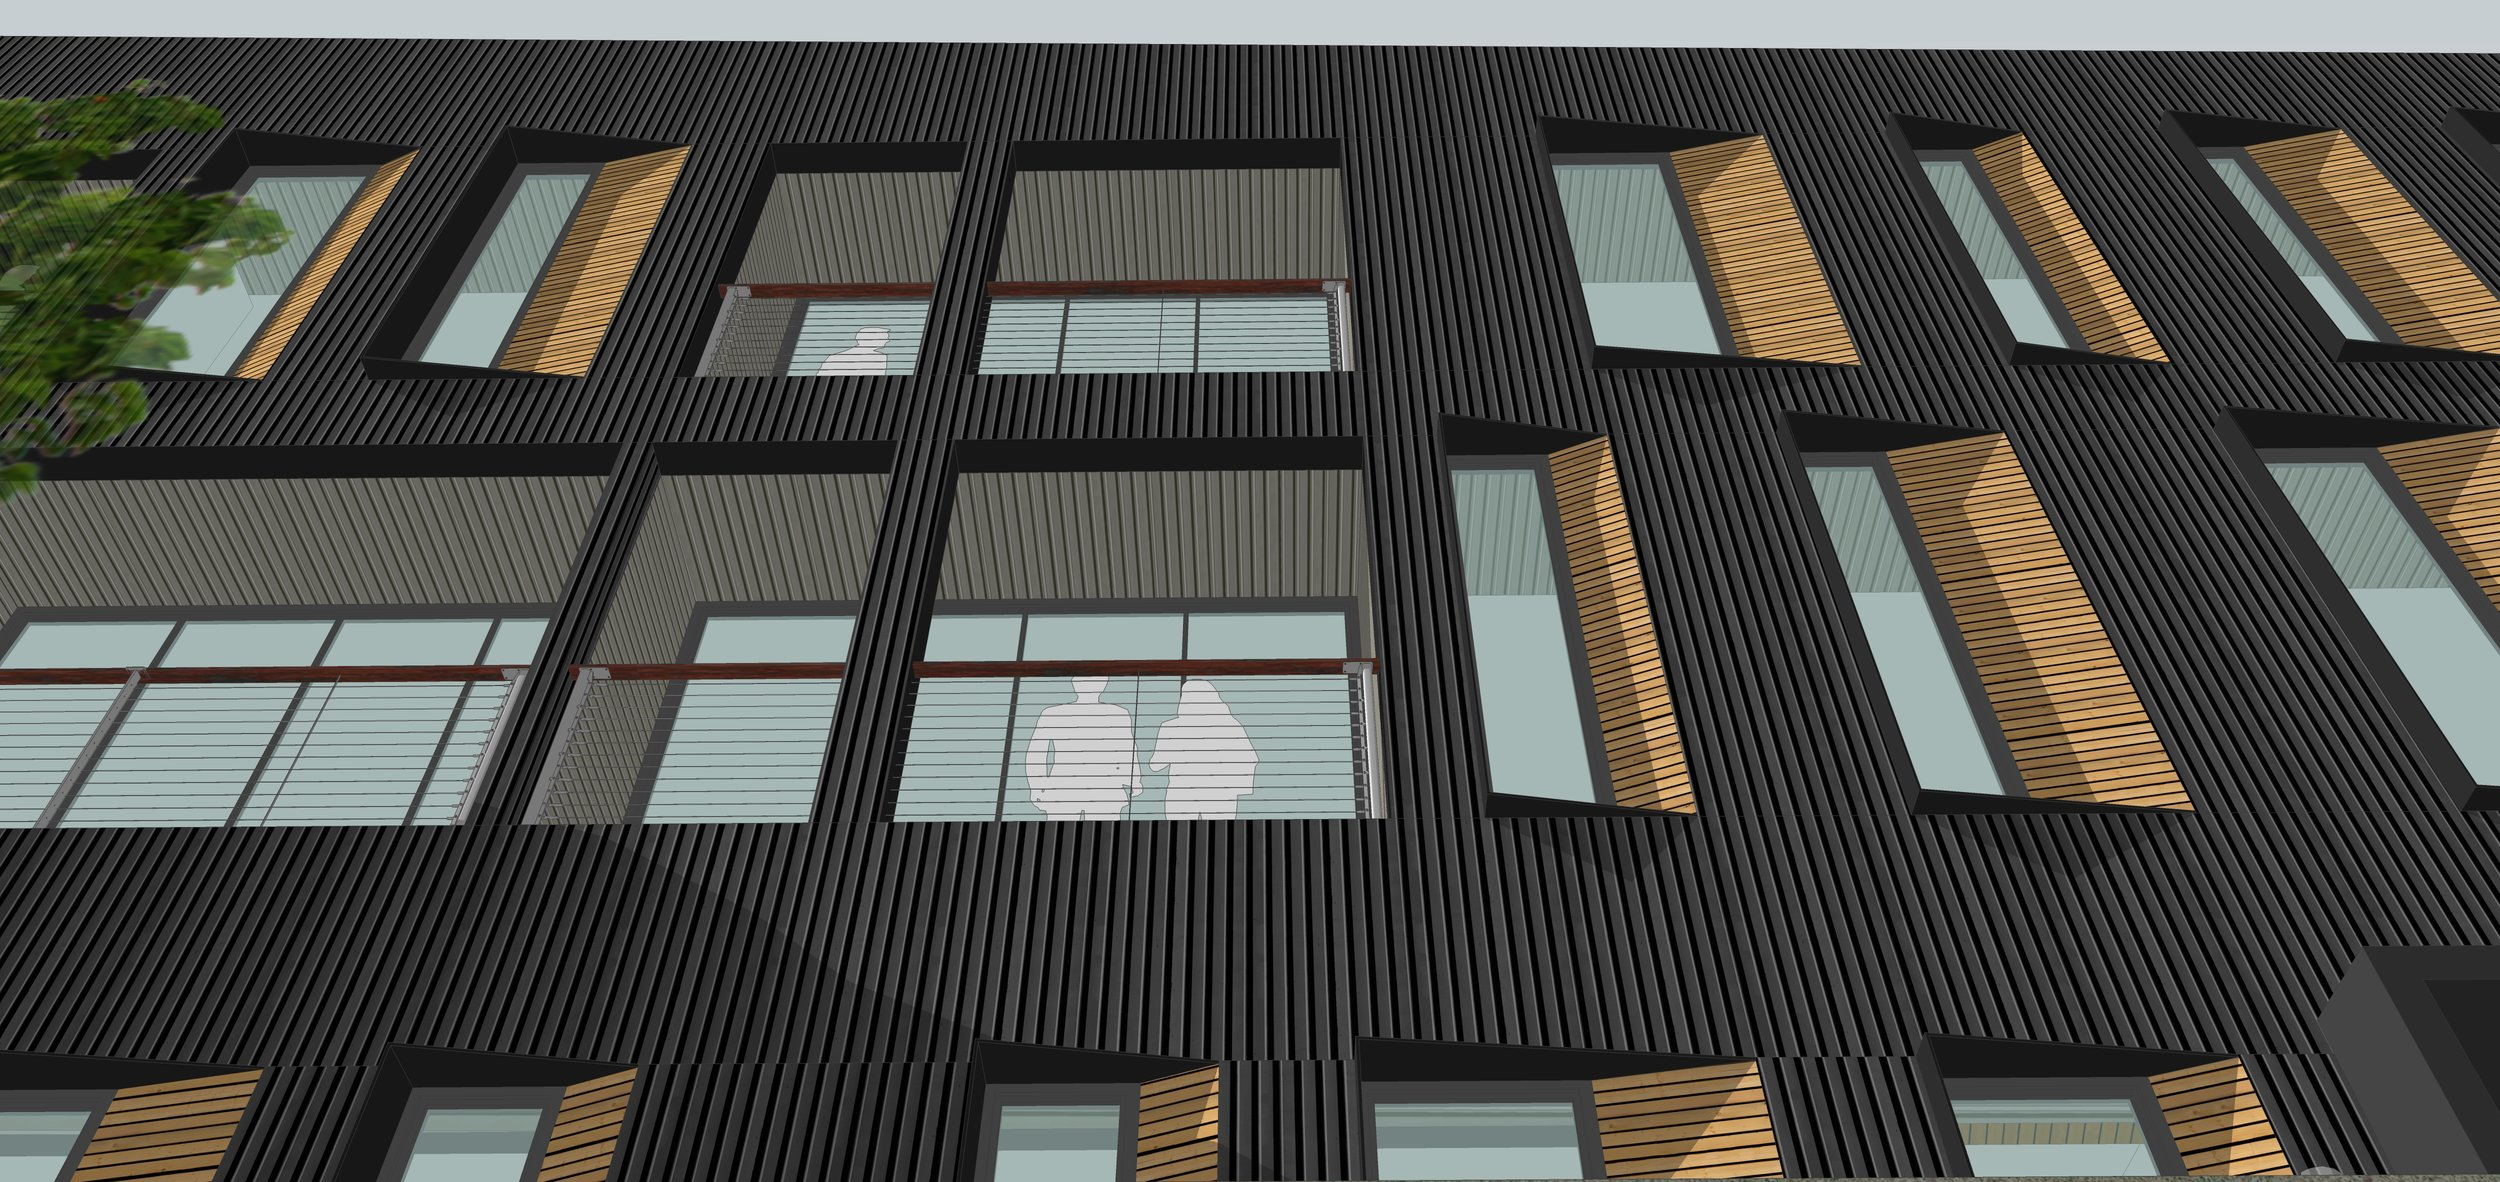 Each residence has a recessed outdoor balcony -